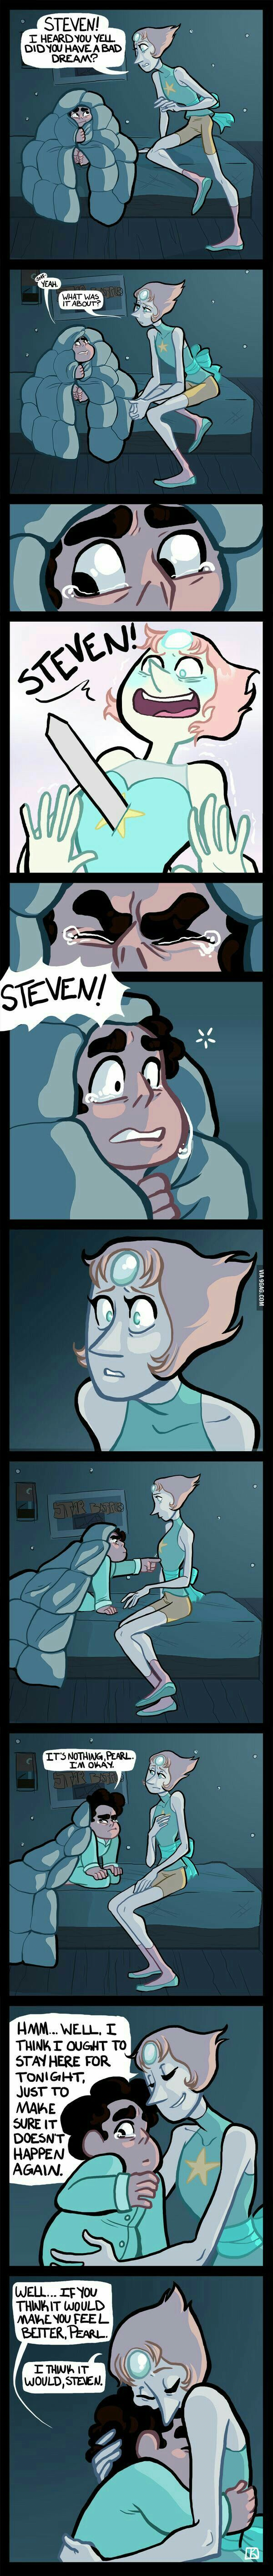 Bad dream (Animation  : Steven Universe) - 9GAG